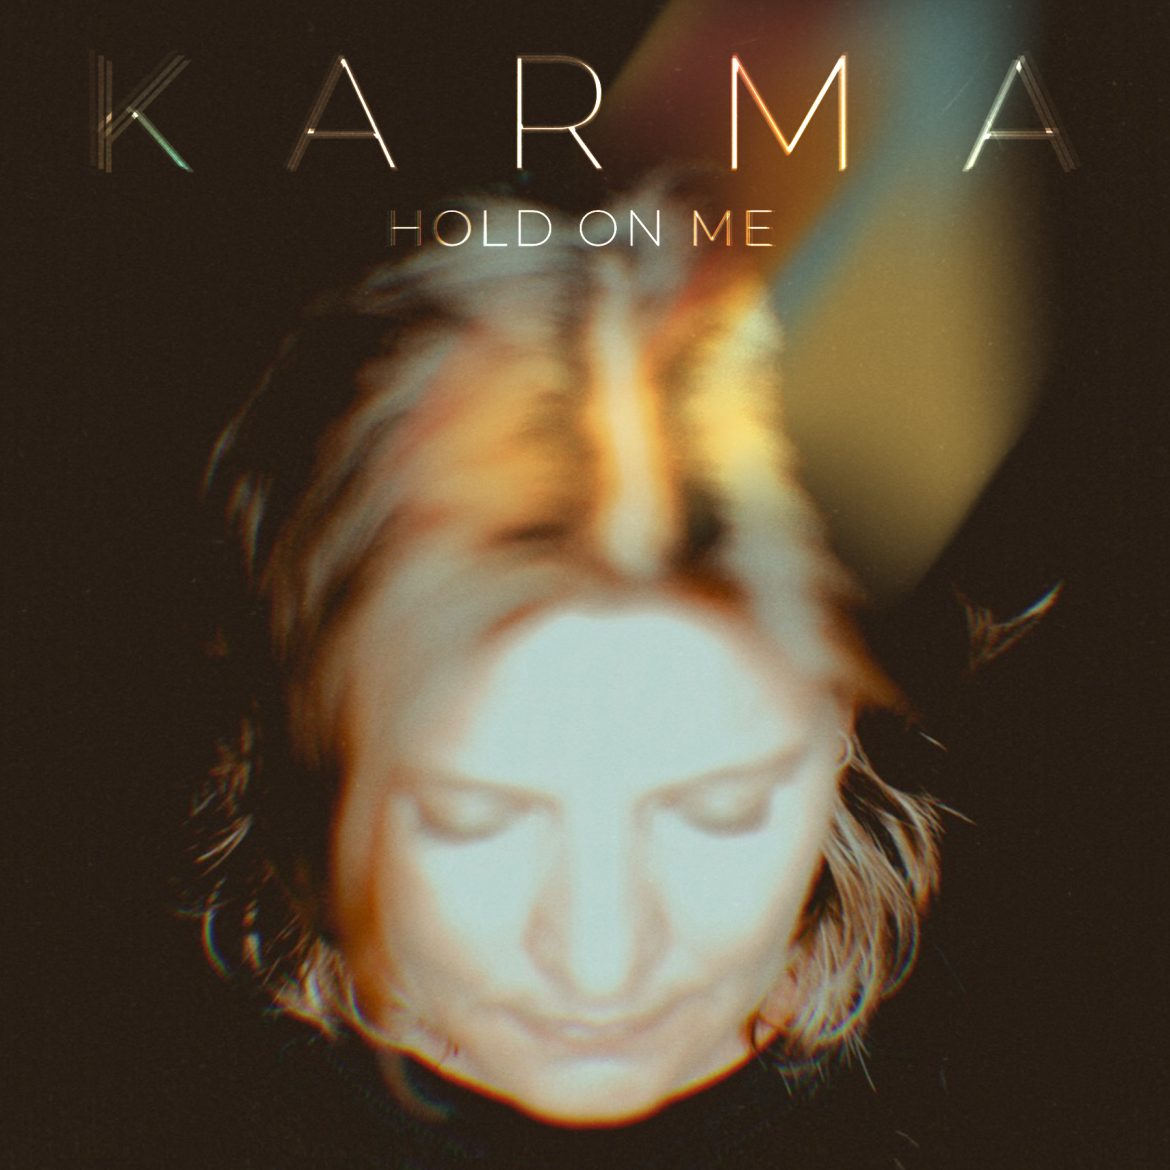 Karma's First New Single In Ten Years, The Tragically beautiful Hold On Me – Now Live on The Bafana FM Playlist.